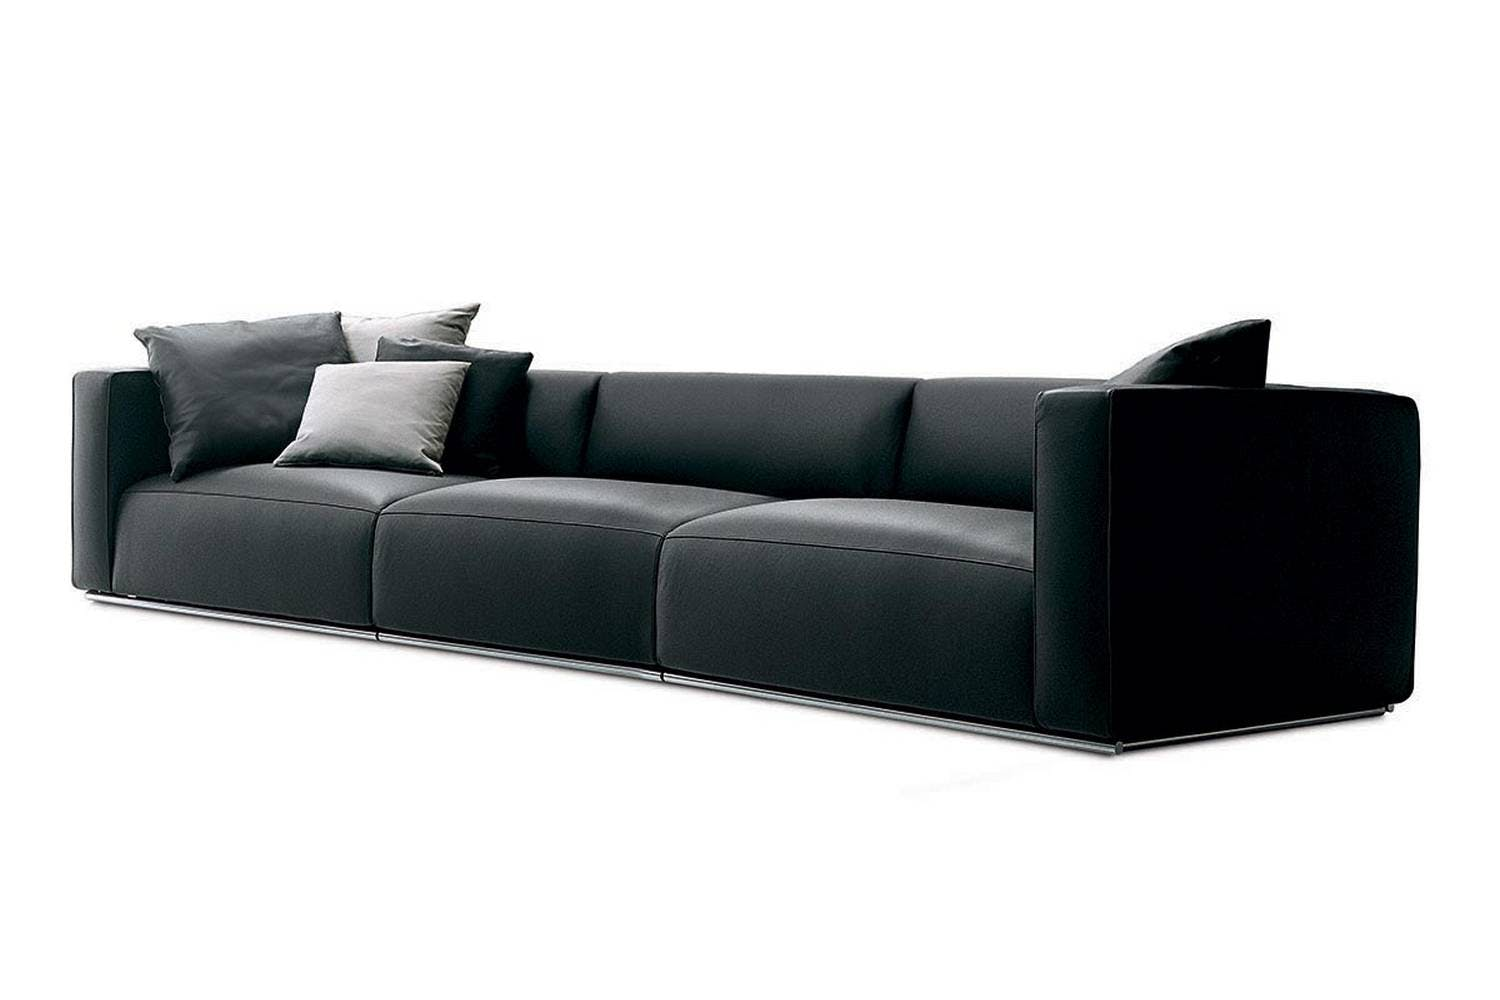 Shangai Sofa By Carlo Colombo For Poliform Poliform